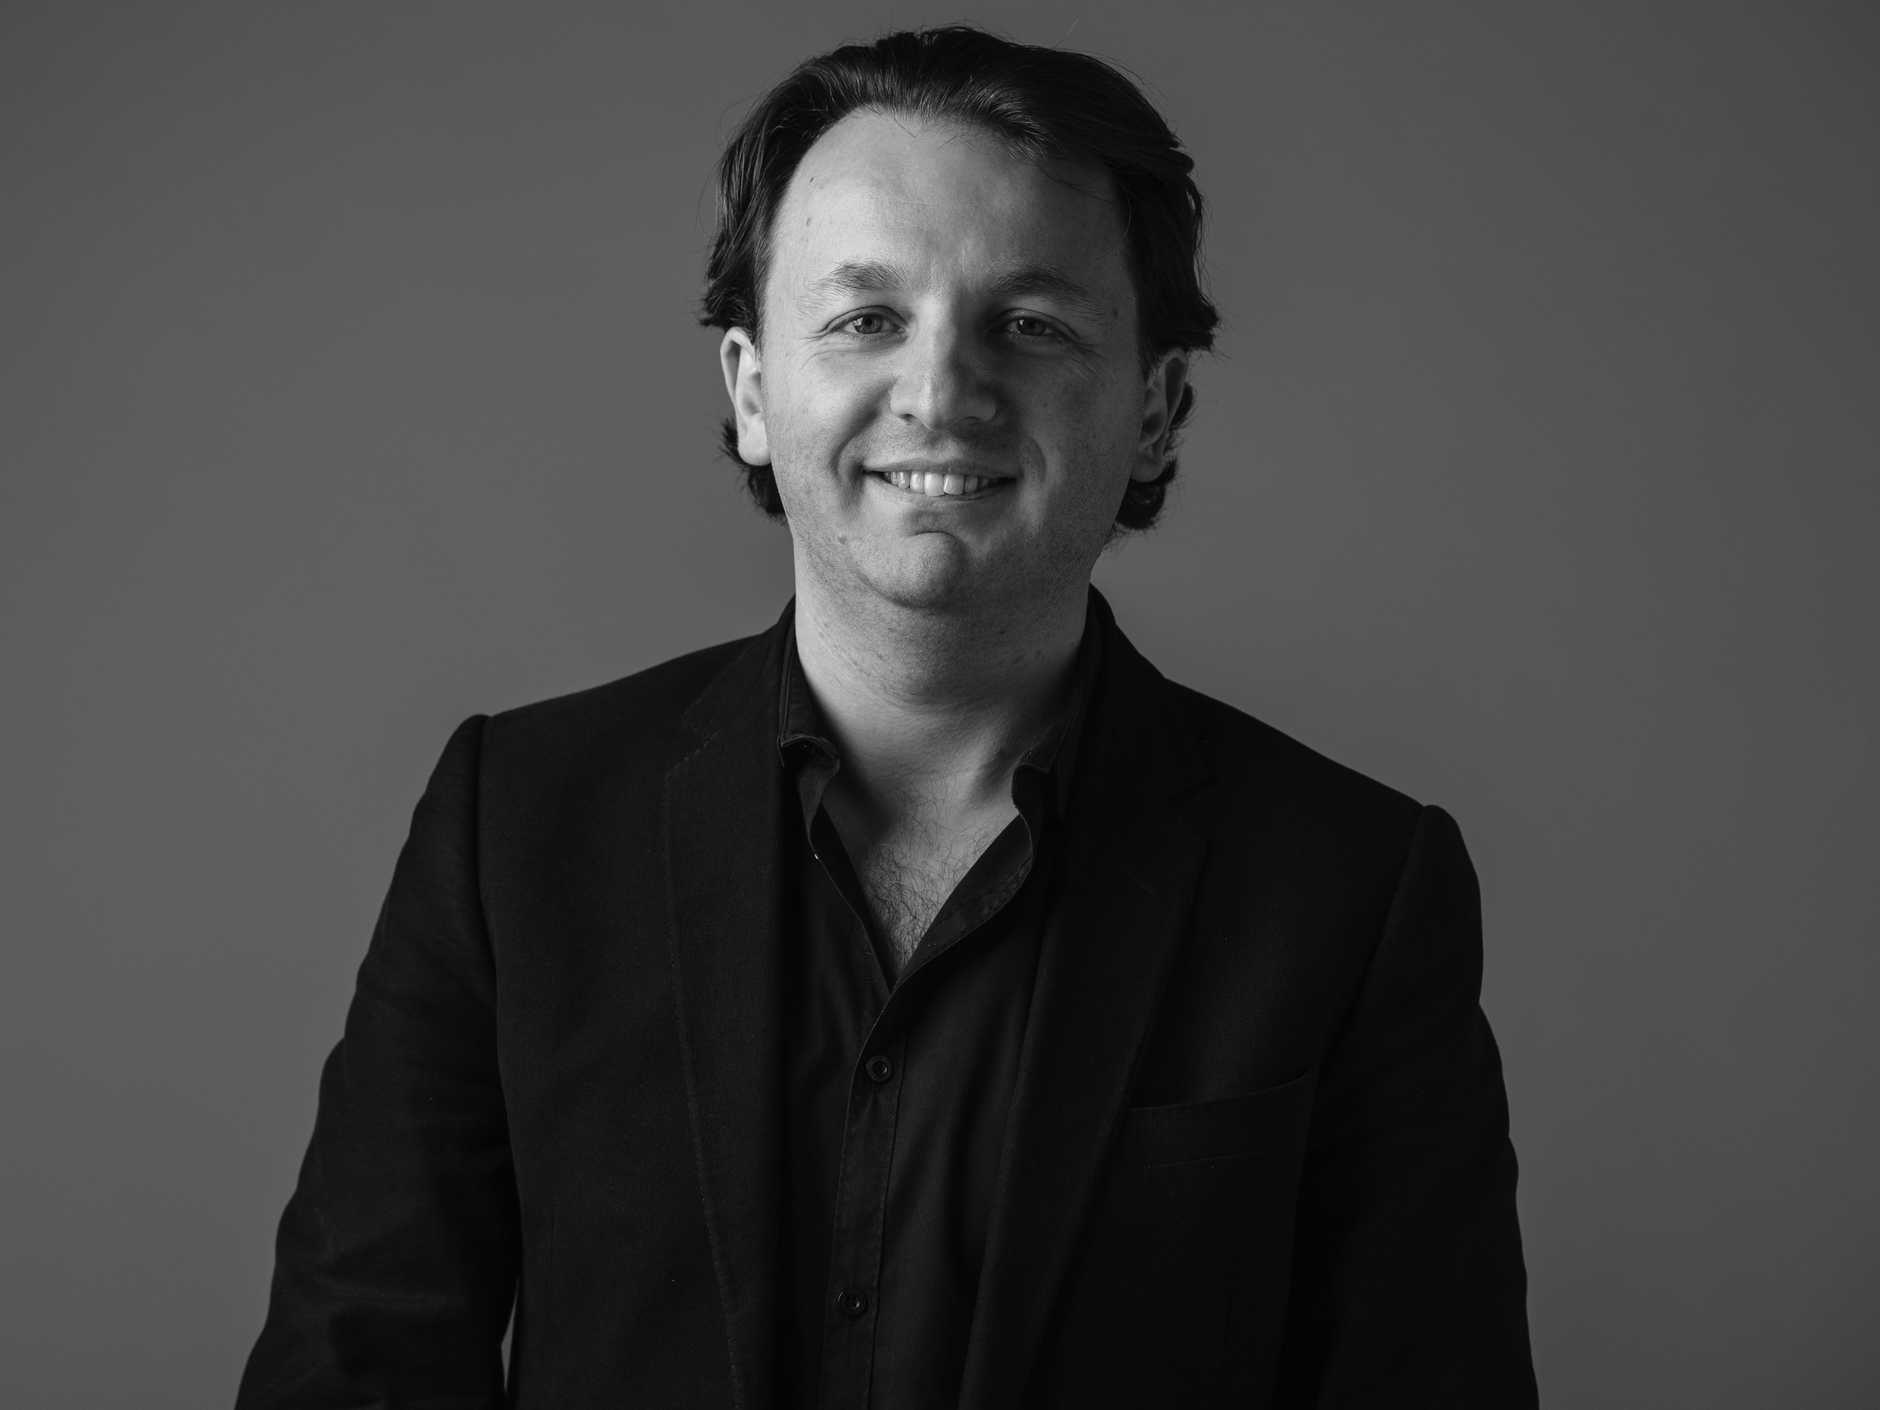 Gennady Volchek is the founder and CEO of Authenticateit.